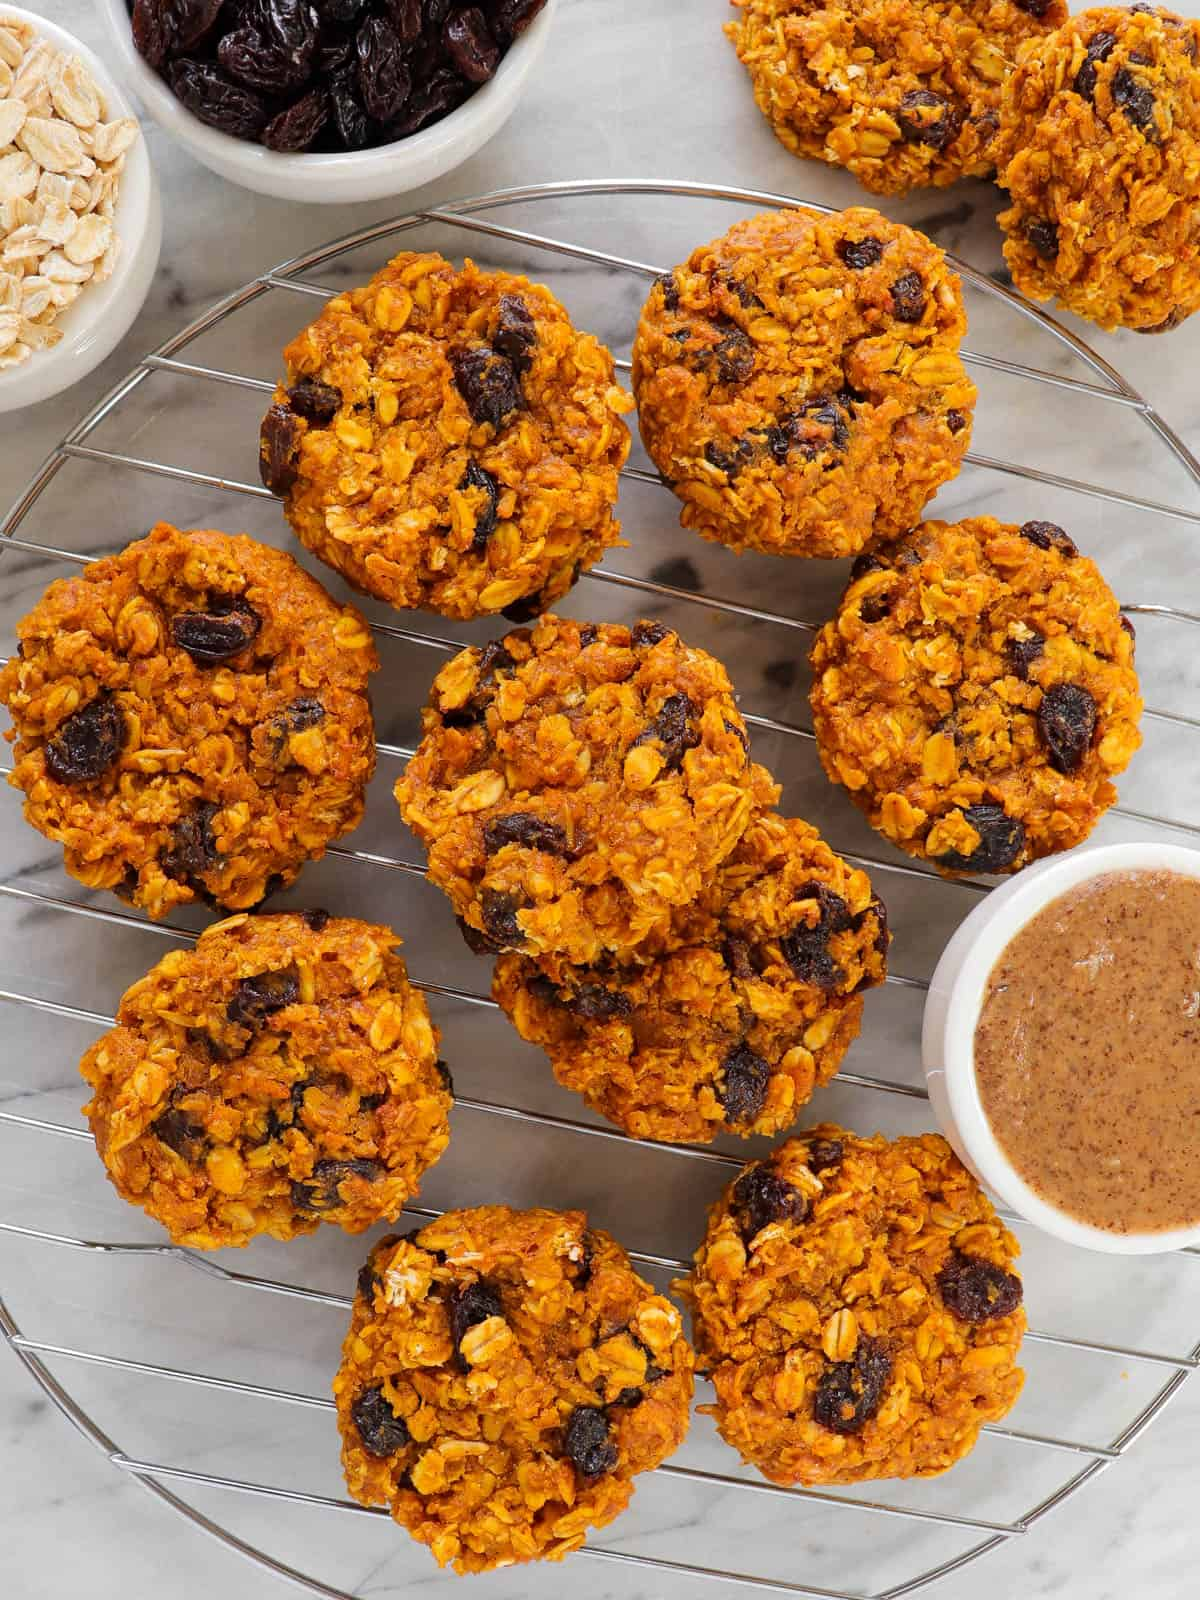 Sweet potato cookies on cooling rack with nut butter, oats and raisins in mini bowls on the side.